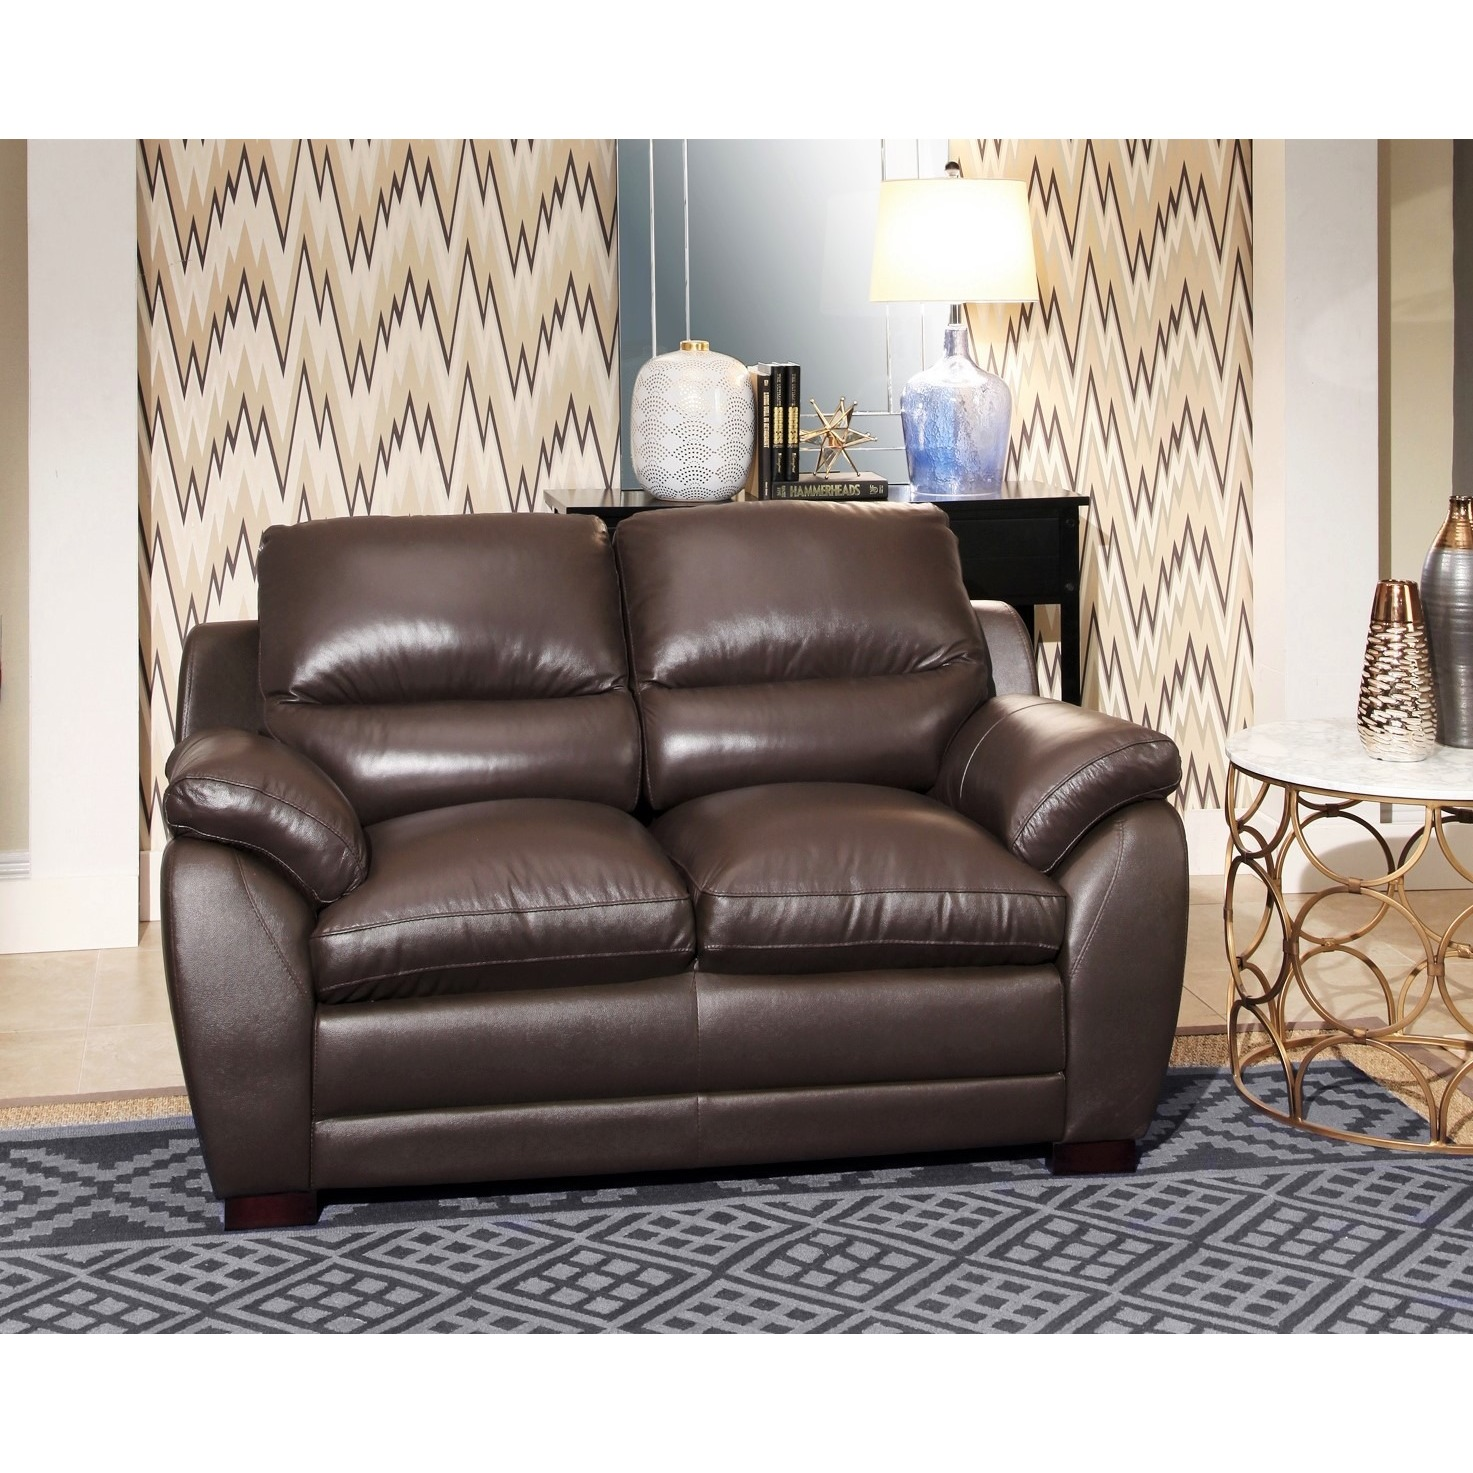 8 piece leather sectional sofa how to decorate with a red sofas couches and loveseats for less overstock